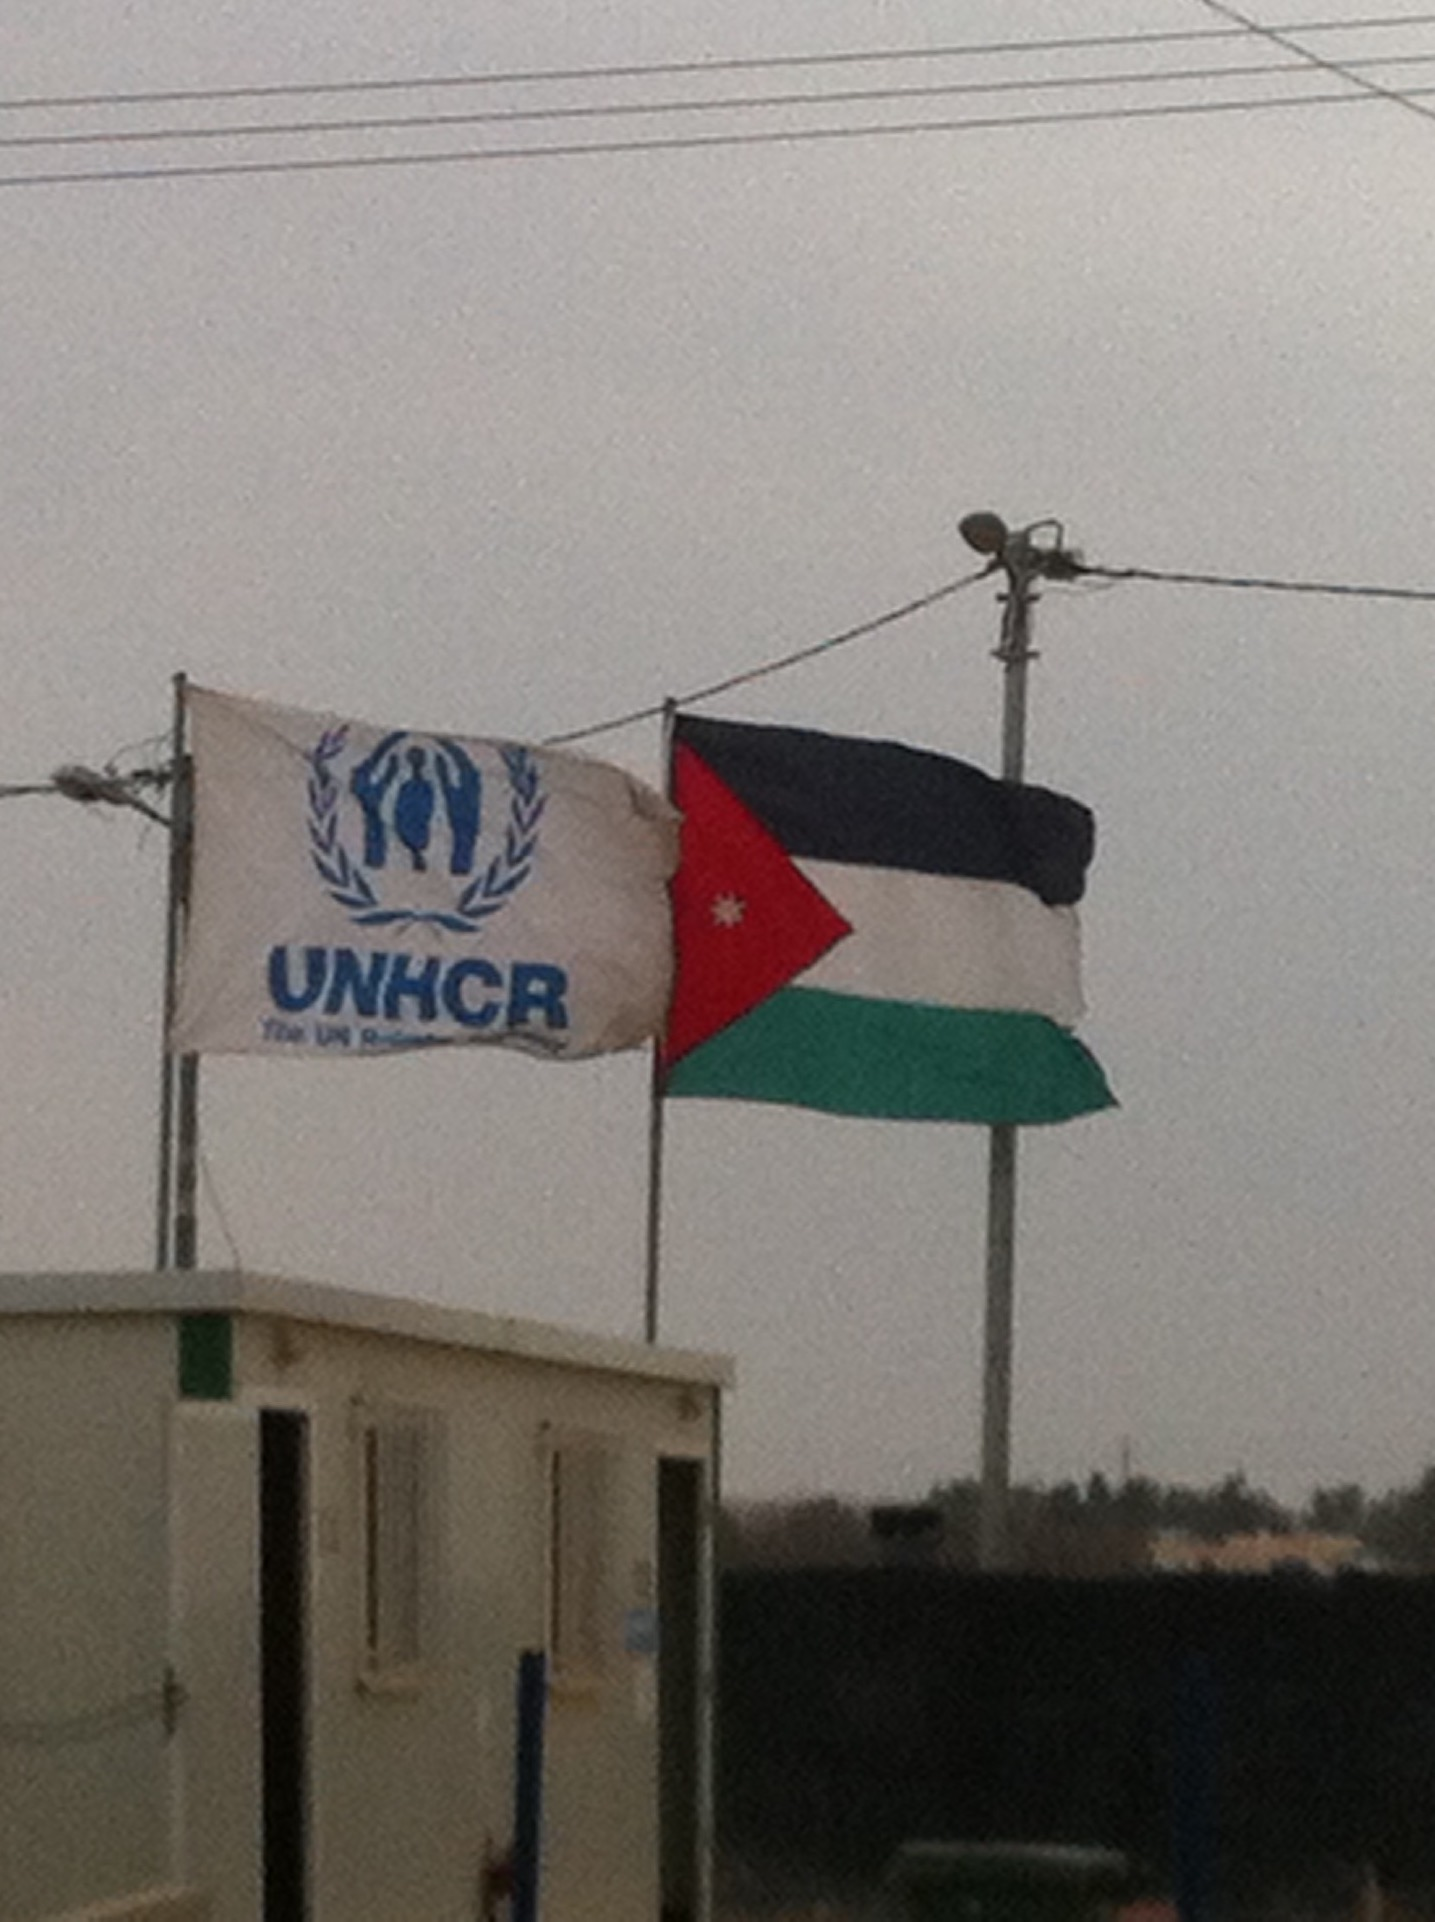 UNHCR and Jordanian flags stand at the entrance to Base Camp, the centre of humanitarian operations in Za'tari, 3 March 2016. Photo by Lewis Turner